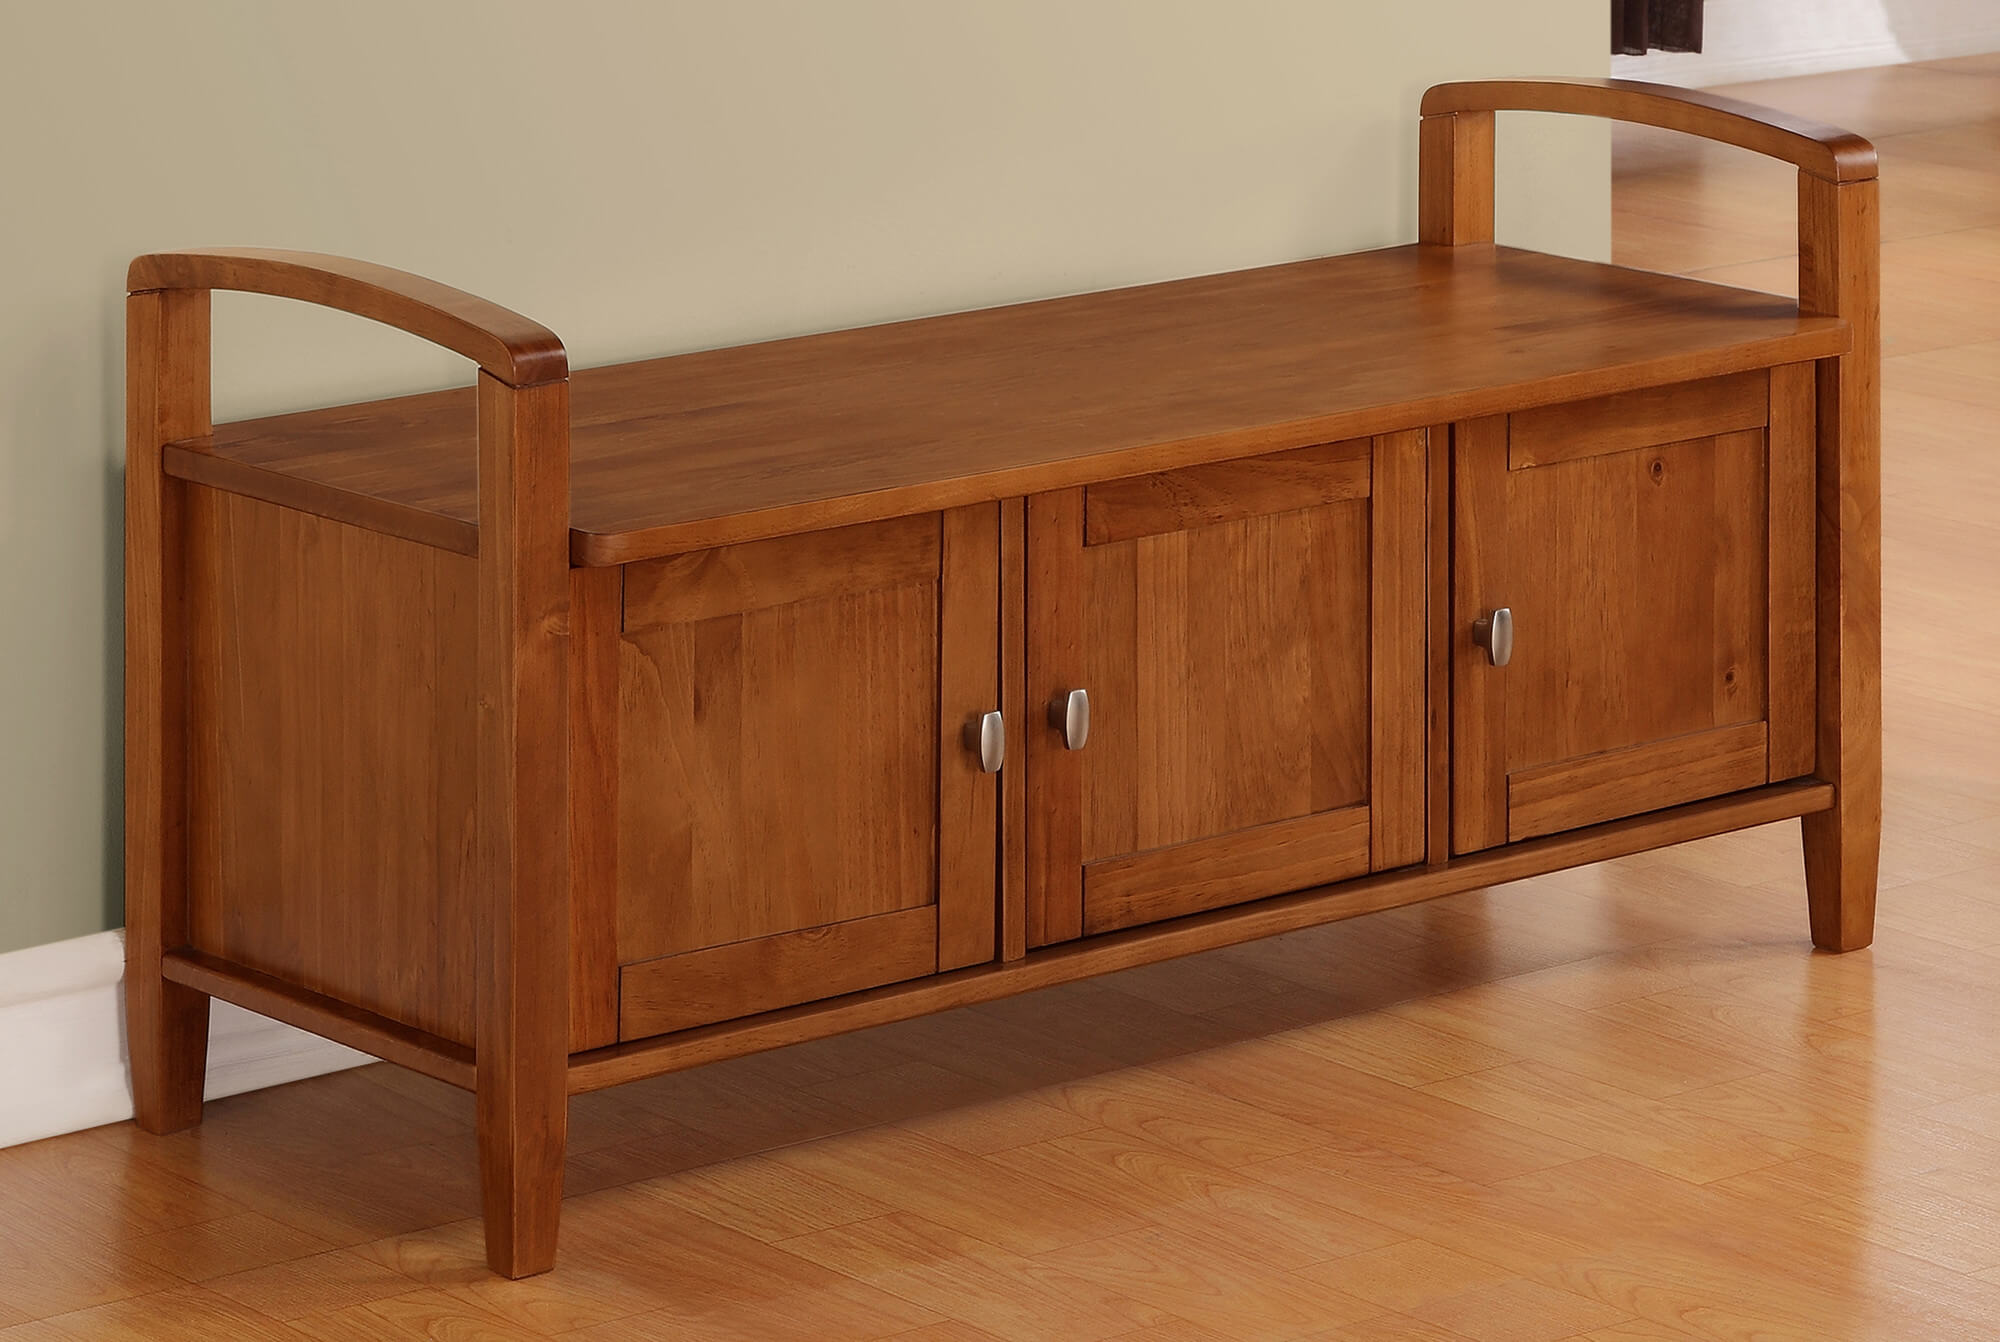 The cabinet storage bench, similar to the cubby type, features storage access on the front surface, but with cupboard doors allowing for items to be hidden away.